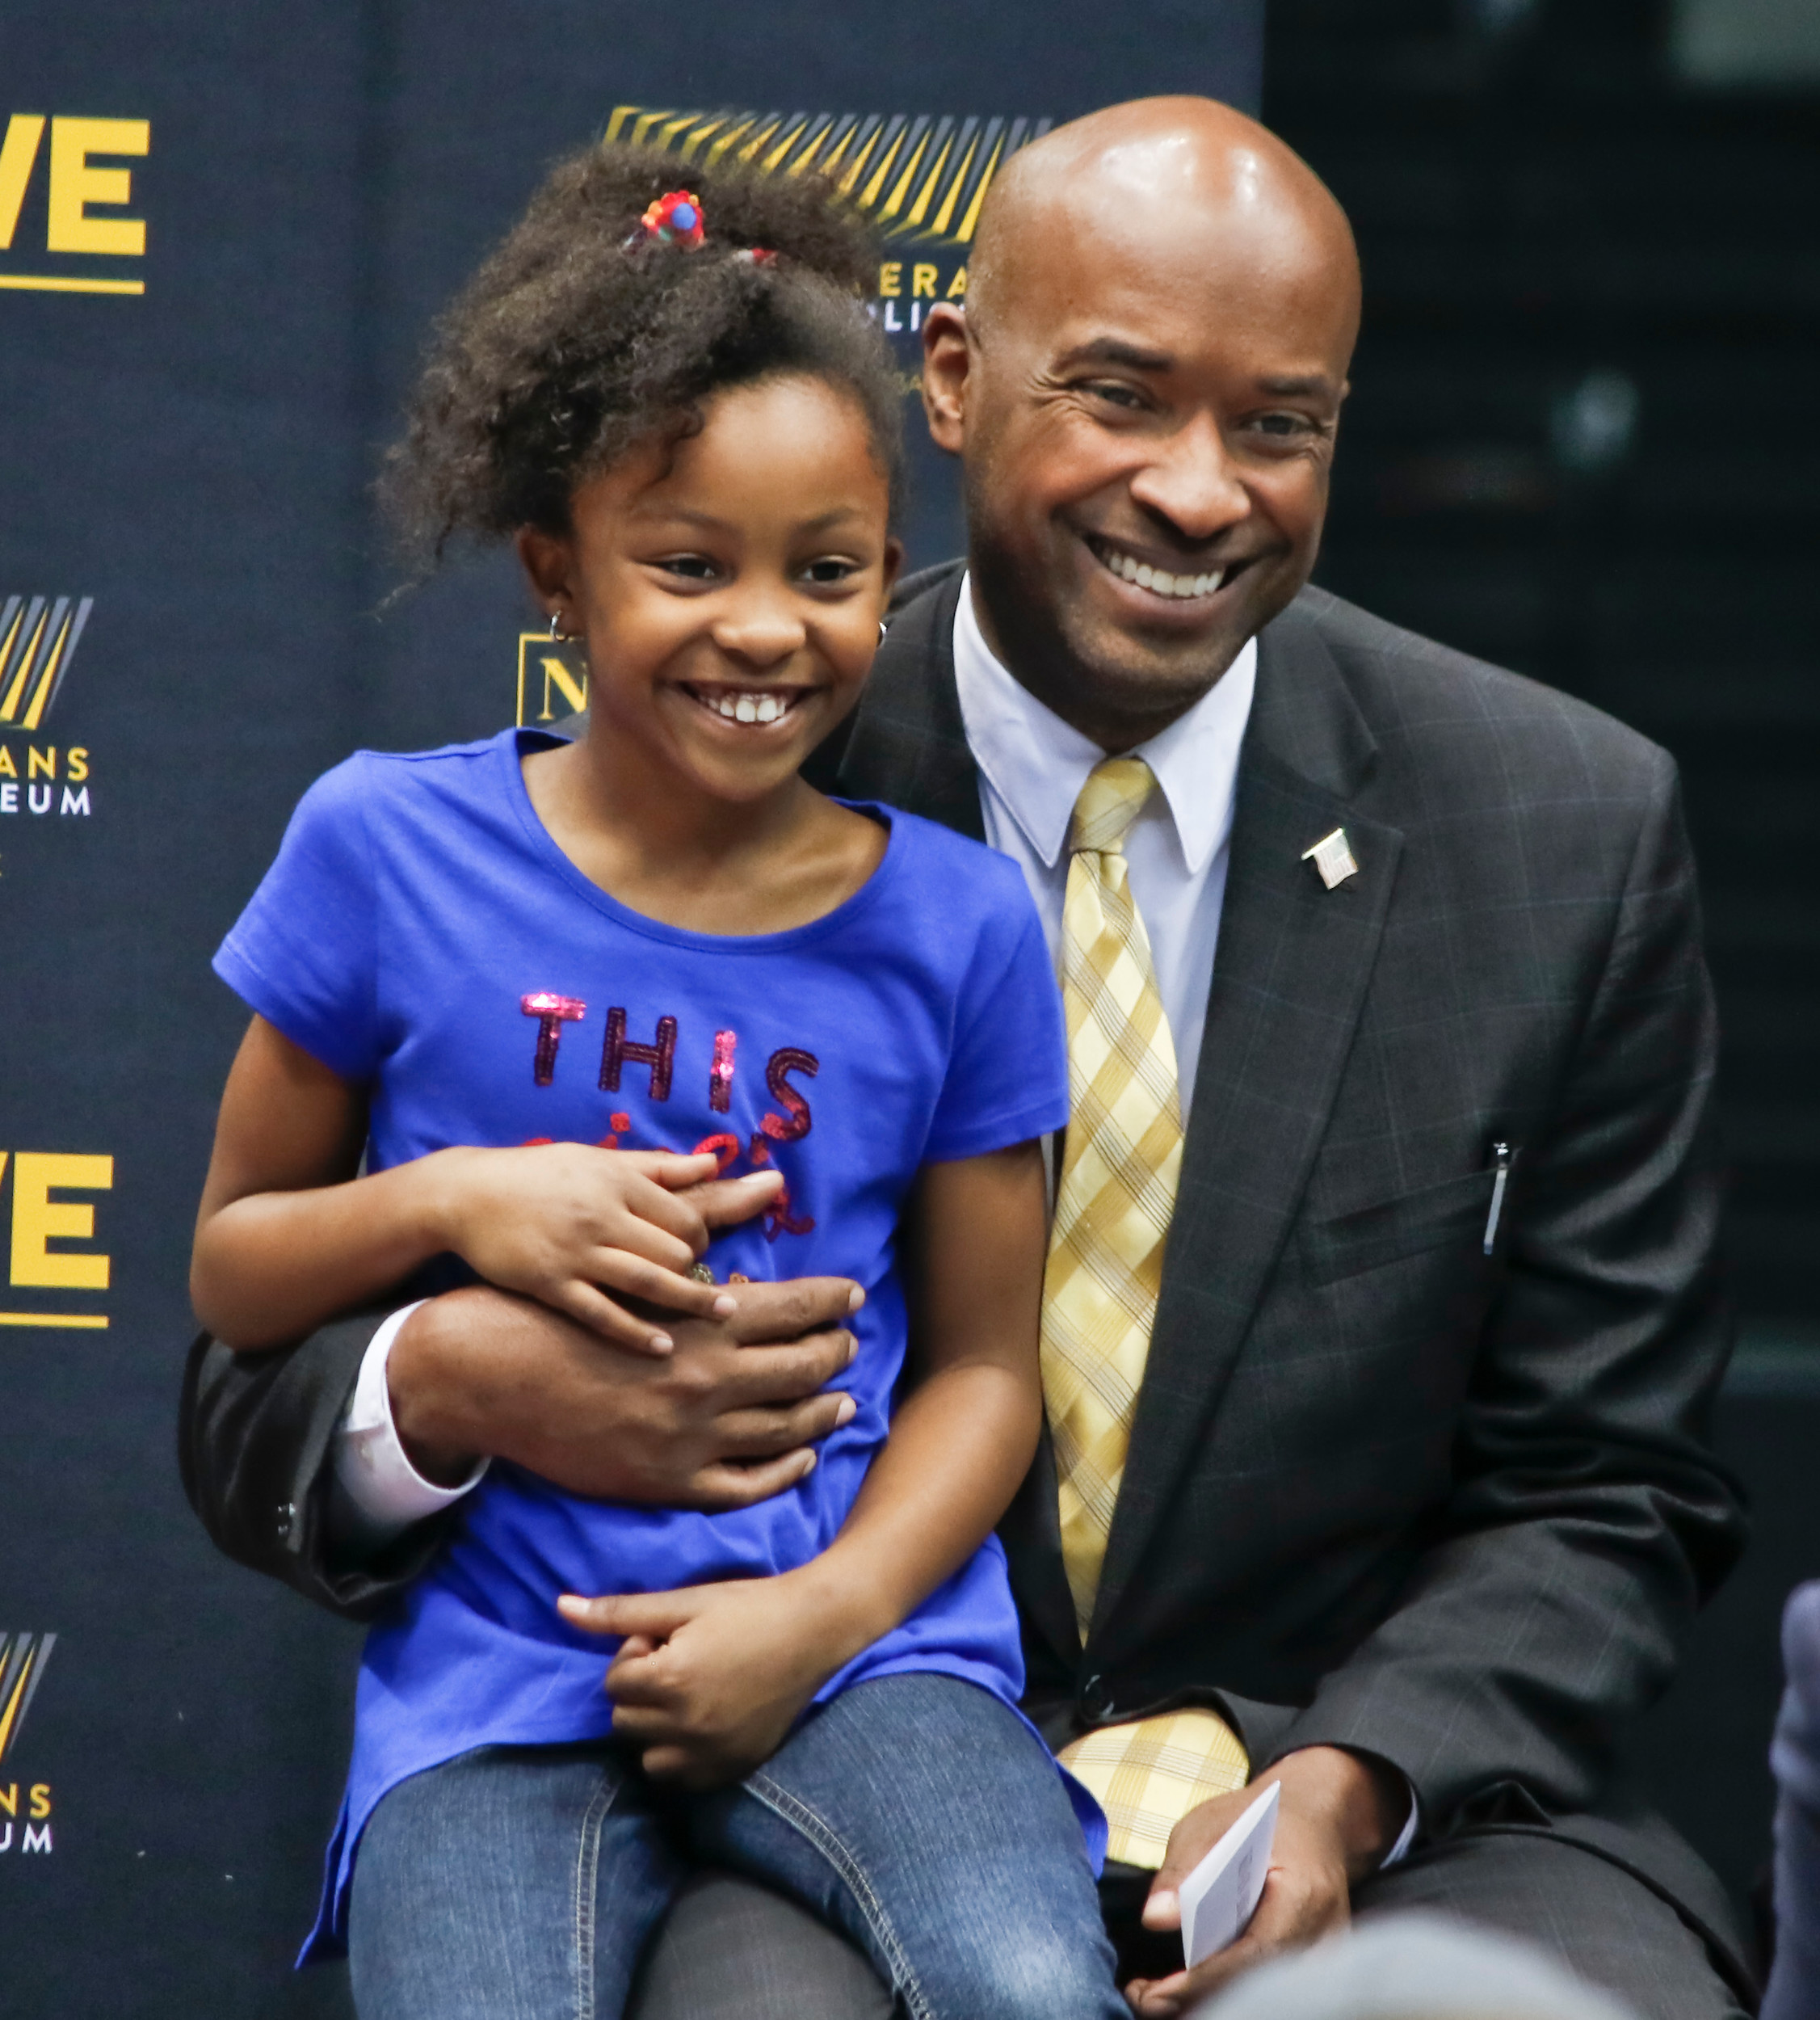 Kevan Abrahams and his daughter during the Nassau Coliseum Tour on March 31st.